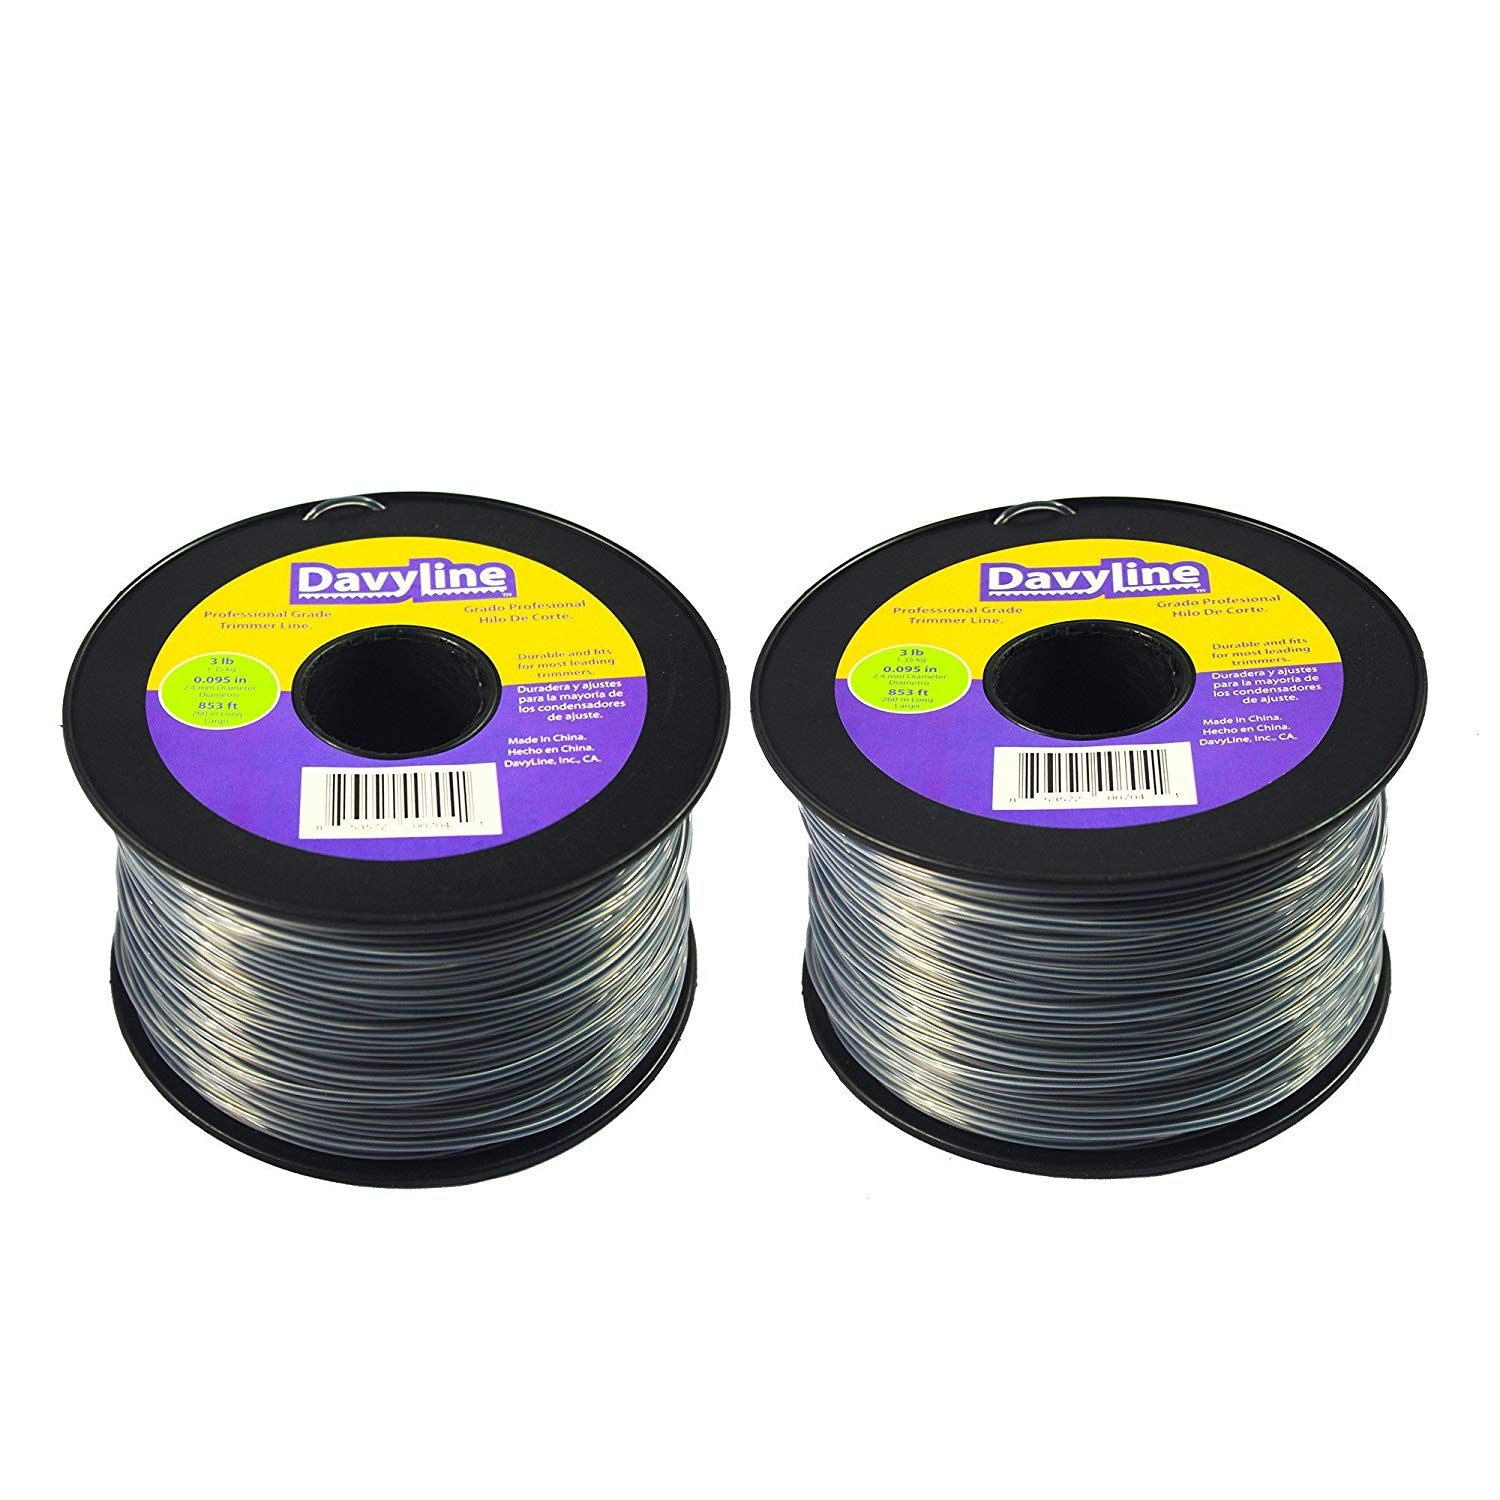 "6-Lb of DavyLine Professional Heavy Duty Round Shaped Nylon String Trimmer Line Dual Color in 2 Units of 3-lb 853 ft Each .095"" Diameter Spool"